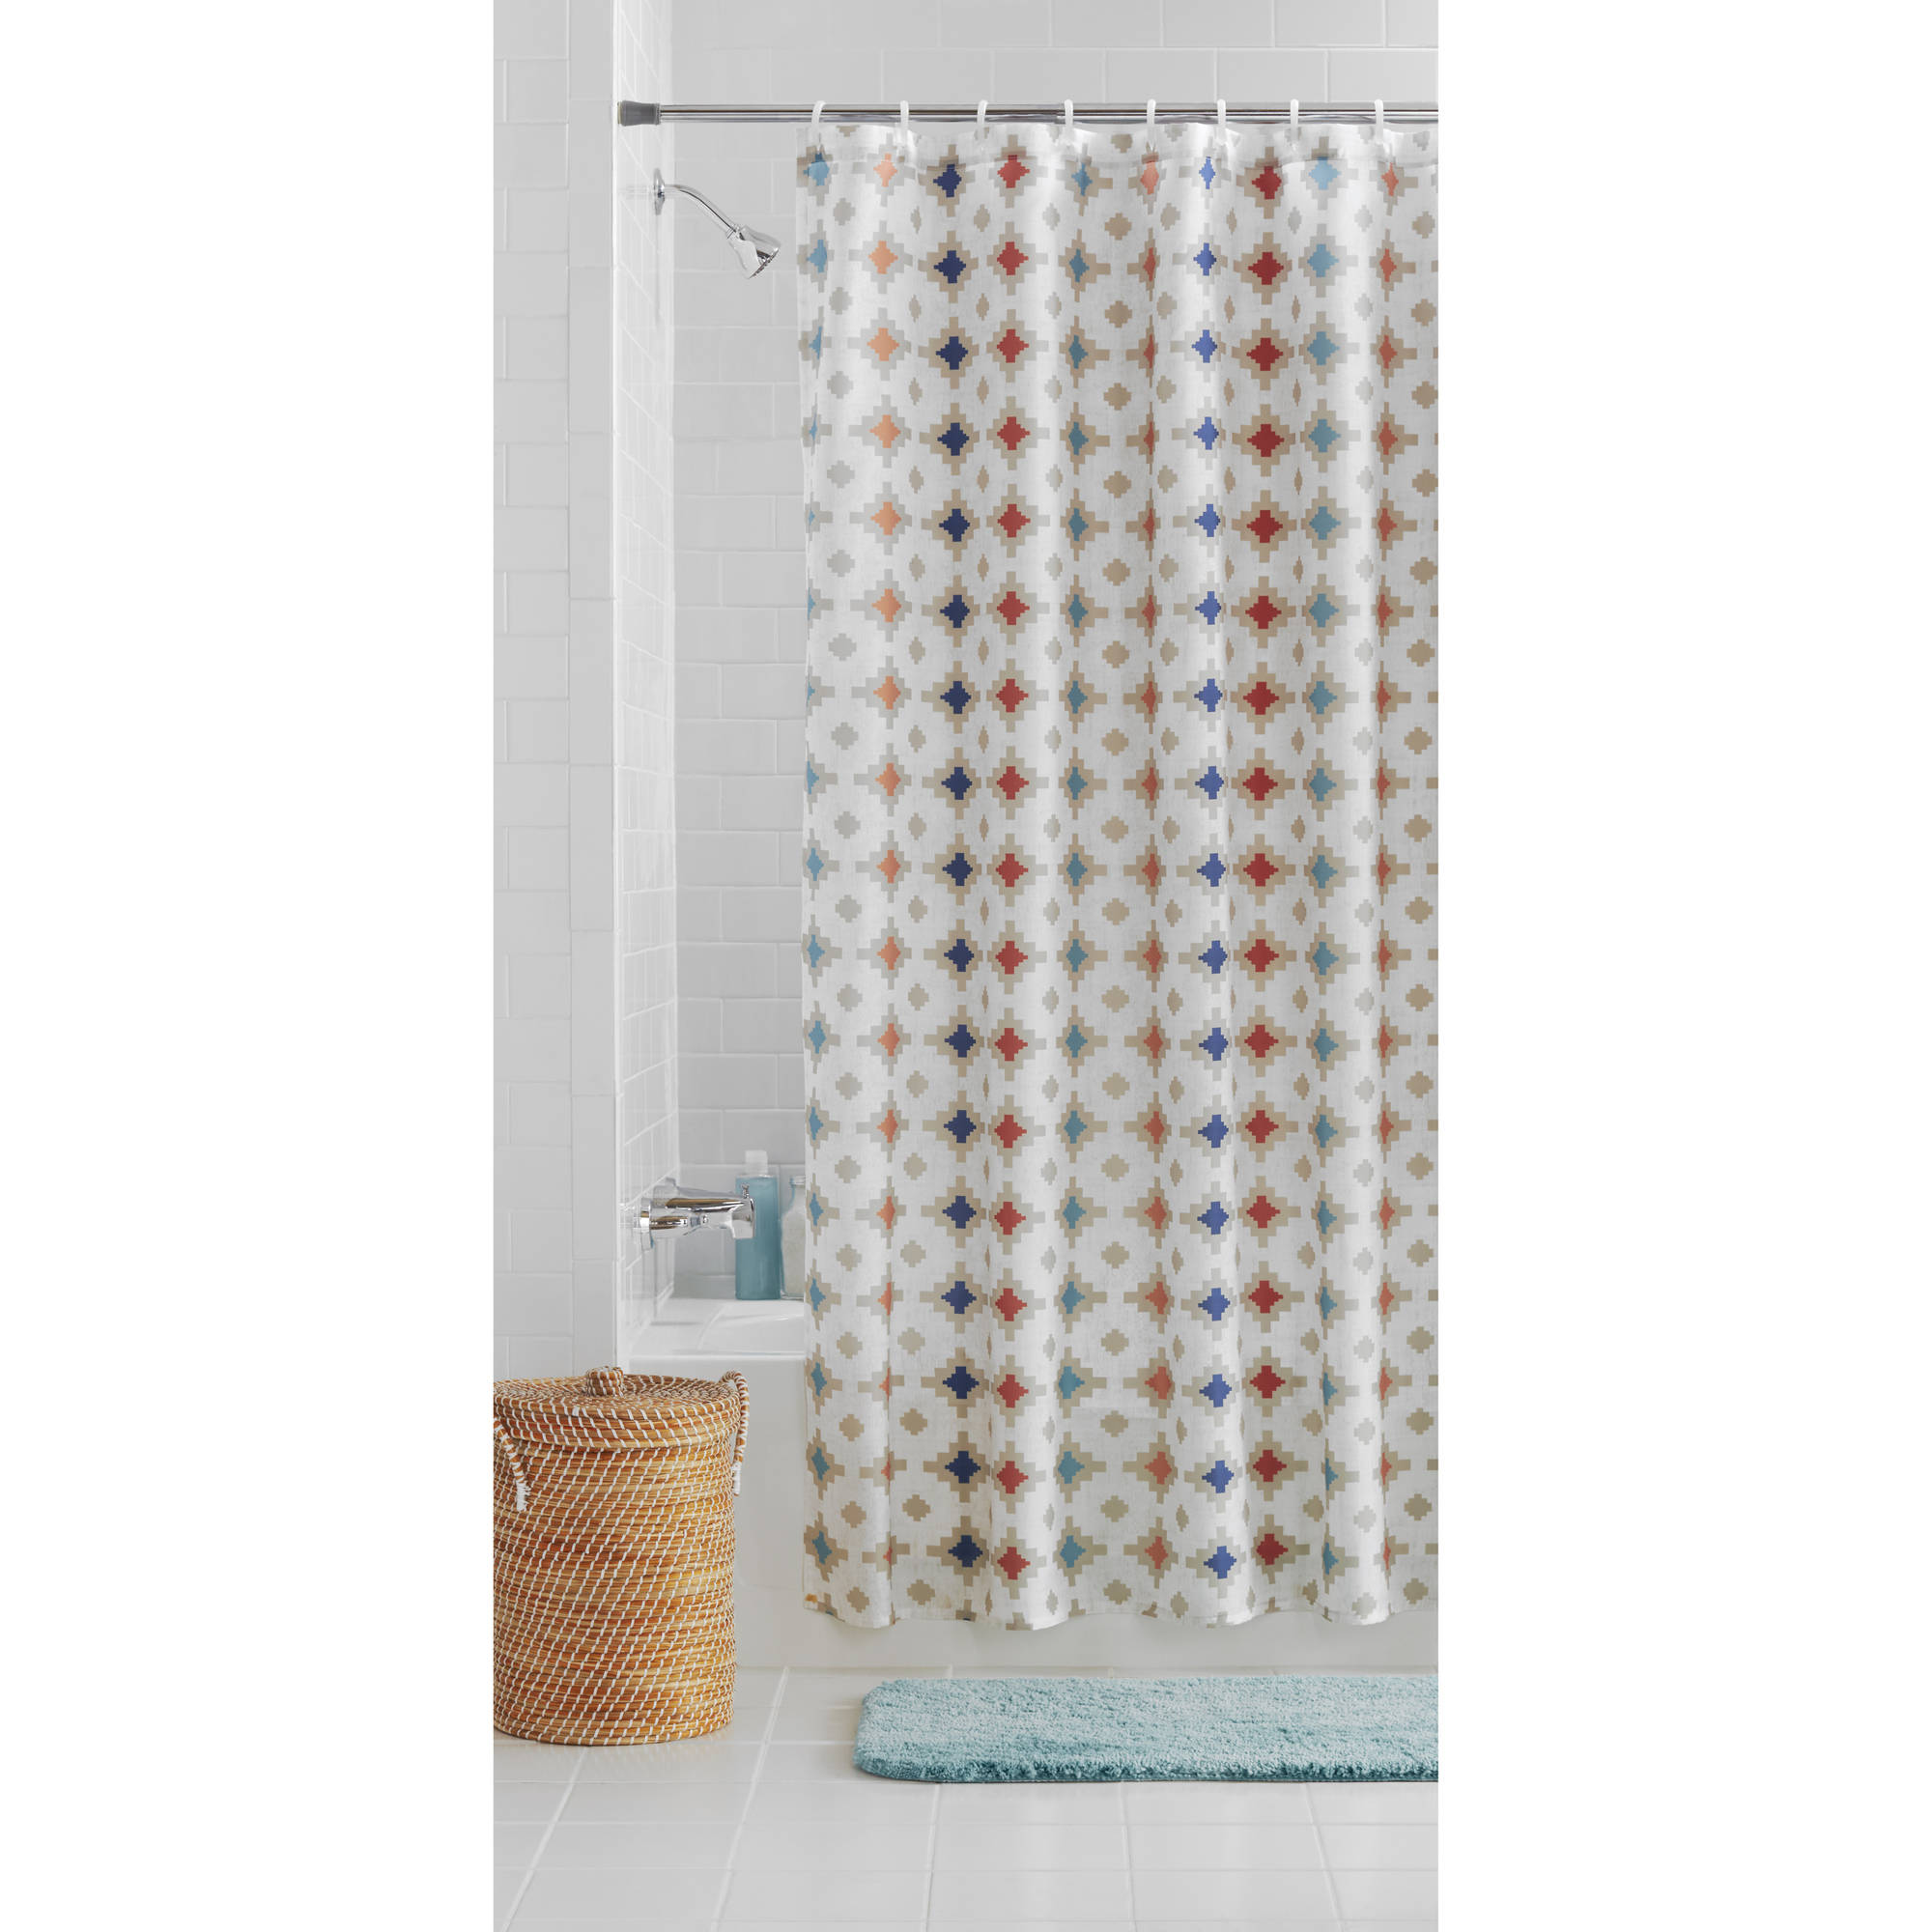 shower design best southwestern ideas curtain beautiful casablanca southwest moroccan curtains bear ombre black of